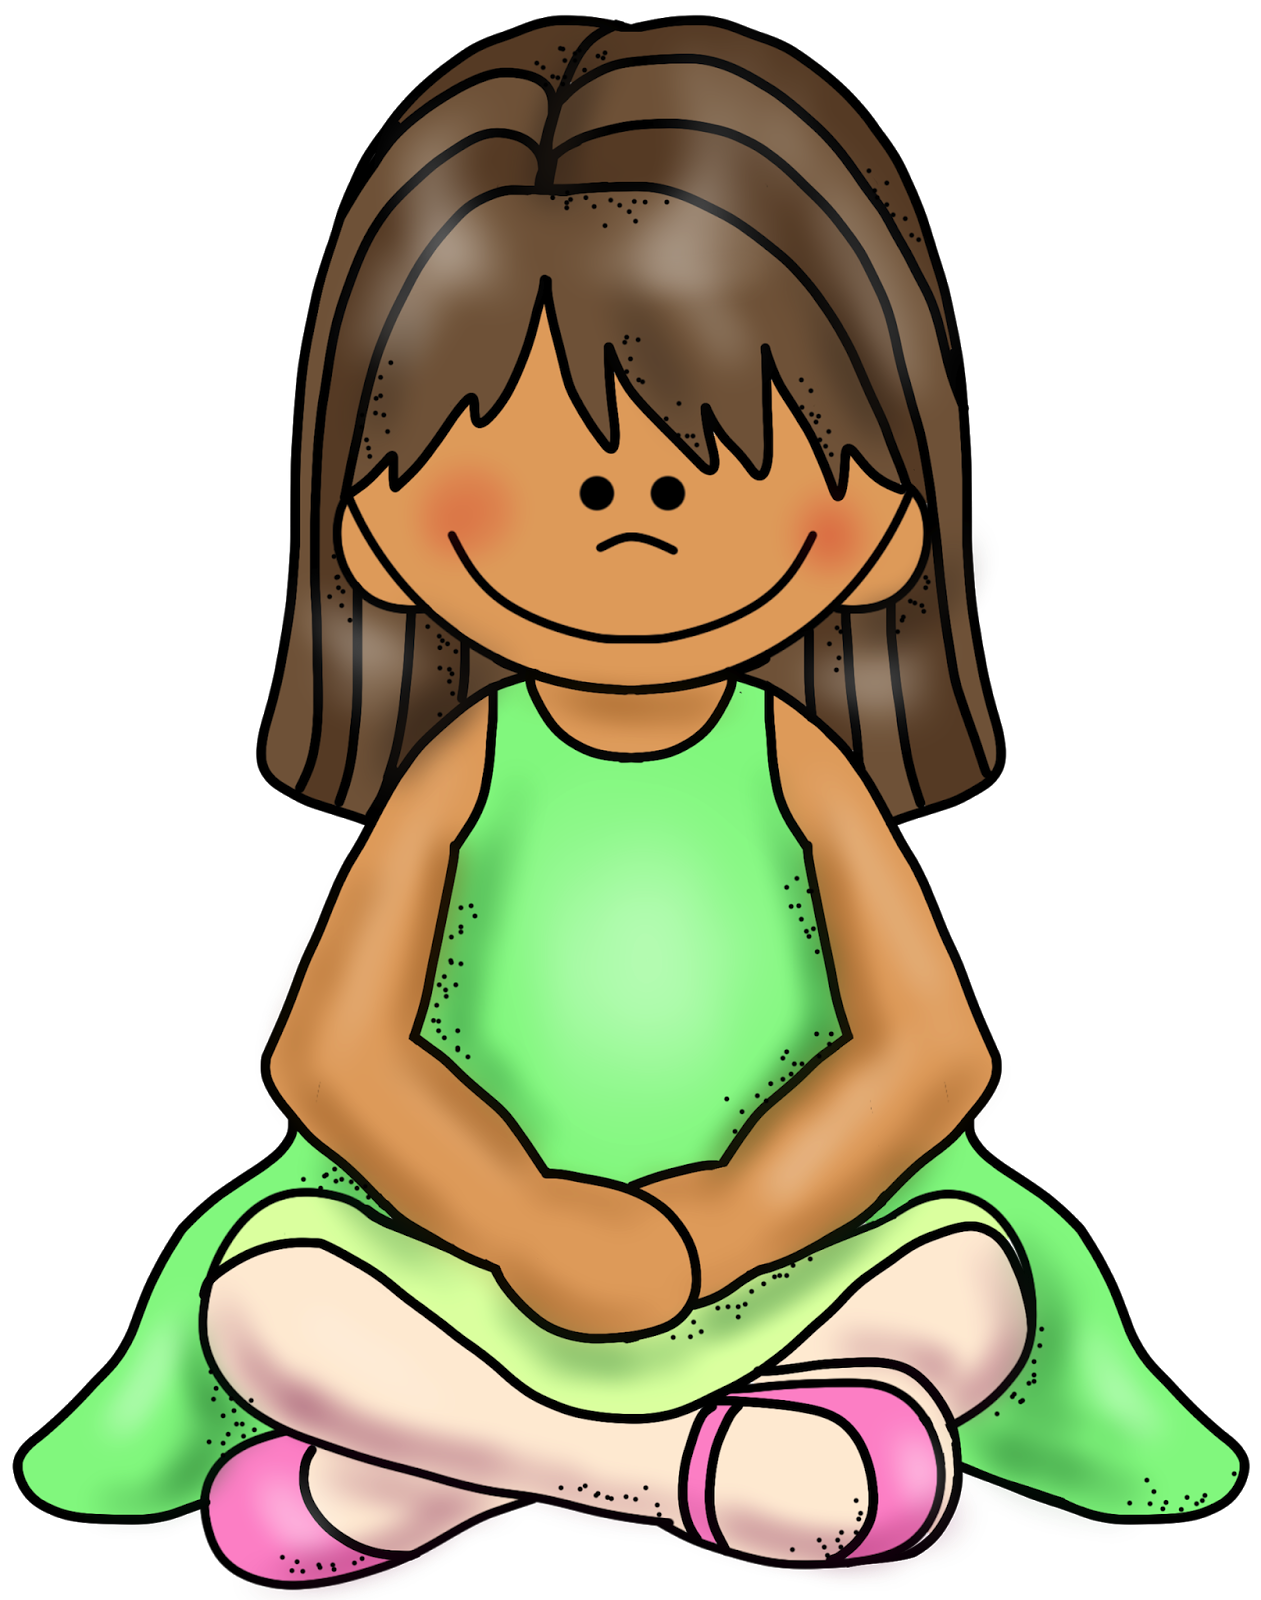 Children sitting criss cross clipart png free stock Sitting Criss Cross Applesauce Clip Art N2 free image png free stock